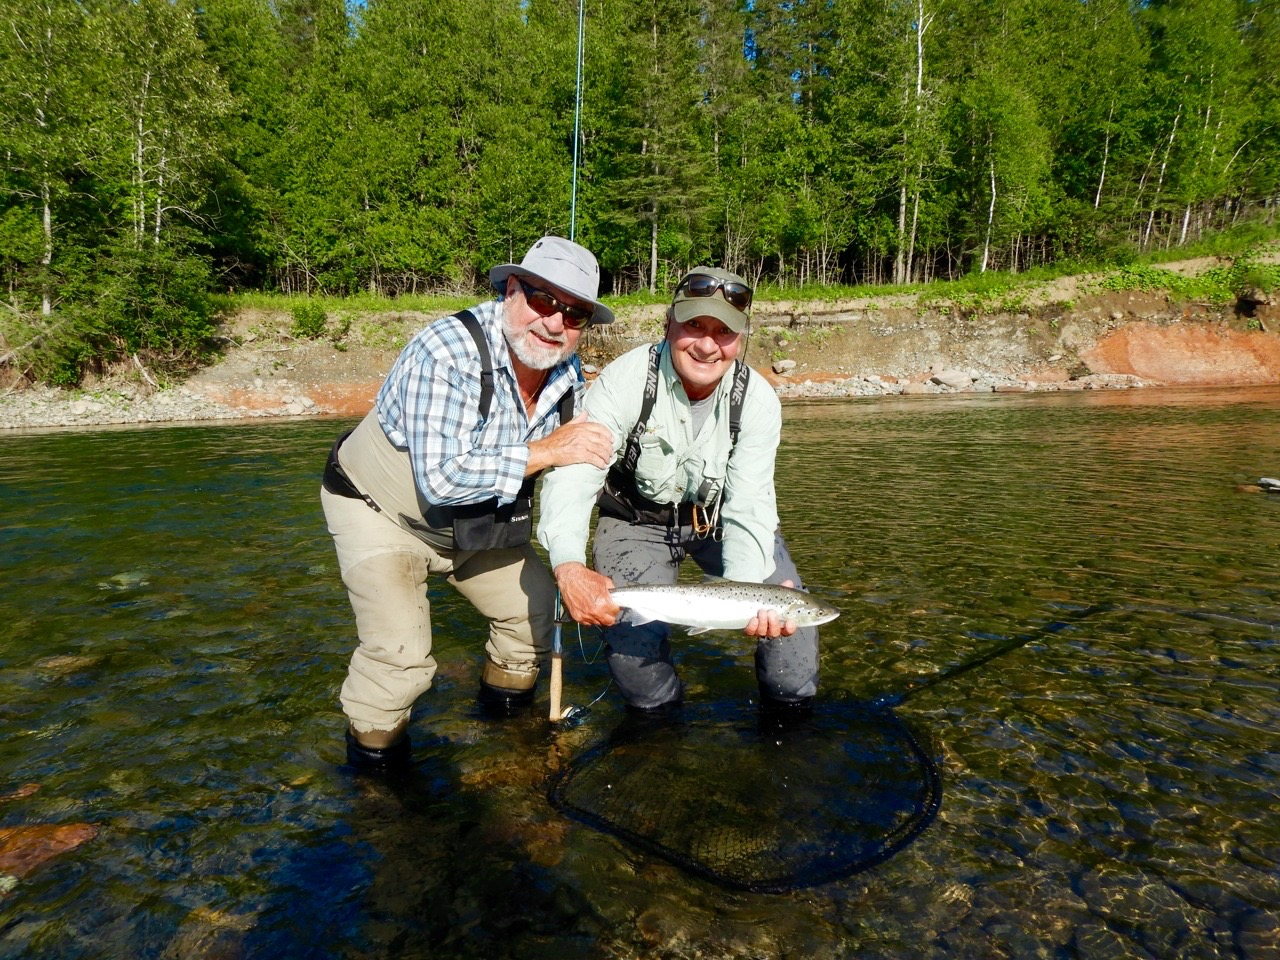 Kjell Ingebrigsten from Norway landed his first one on the Petite Cascapedia guided by Salmon Lodge guide Clement Bernier, nice grilse Kjell.